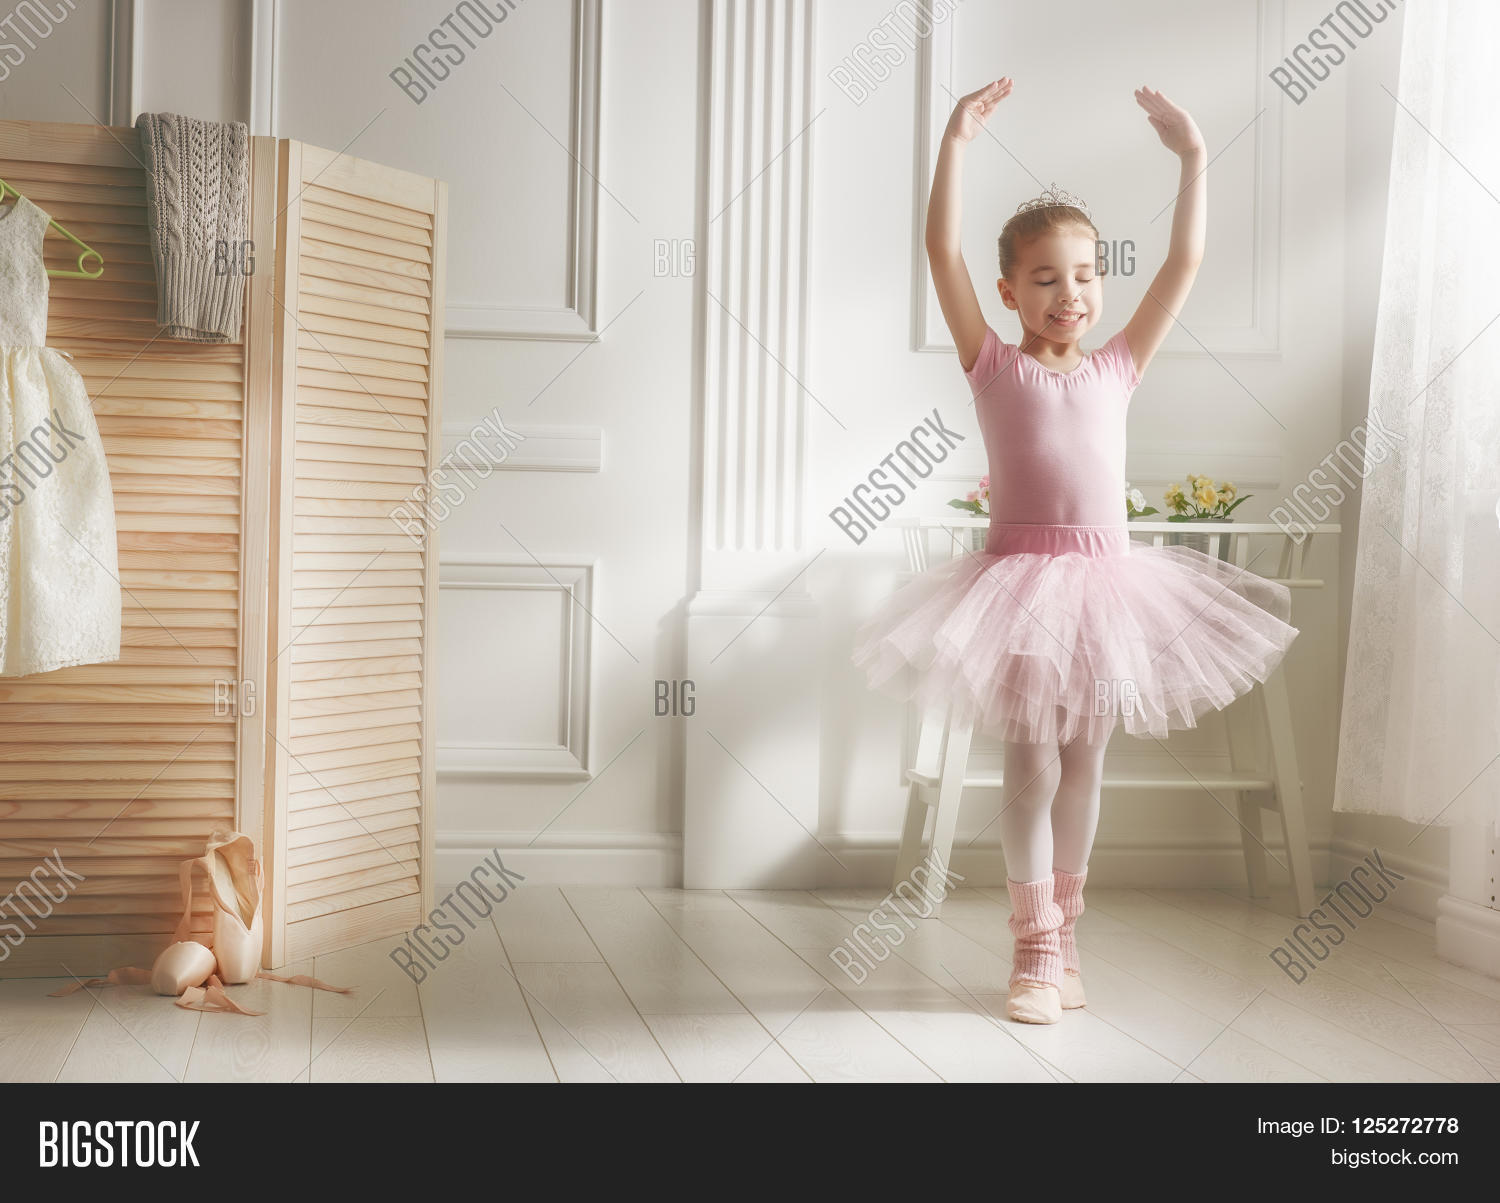 cute little girl image photo free trial bigstock